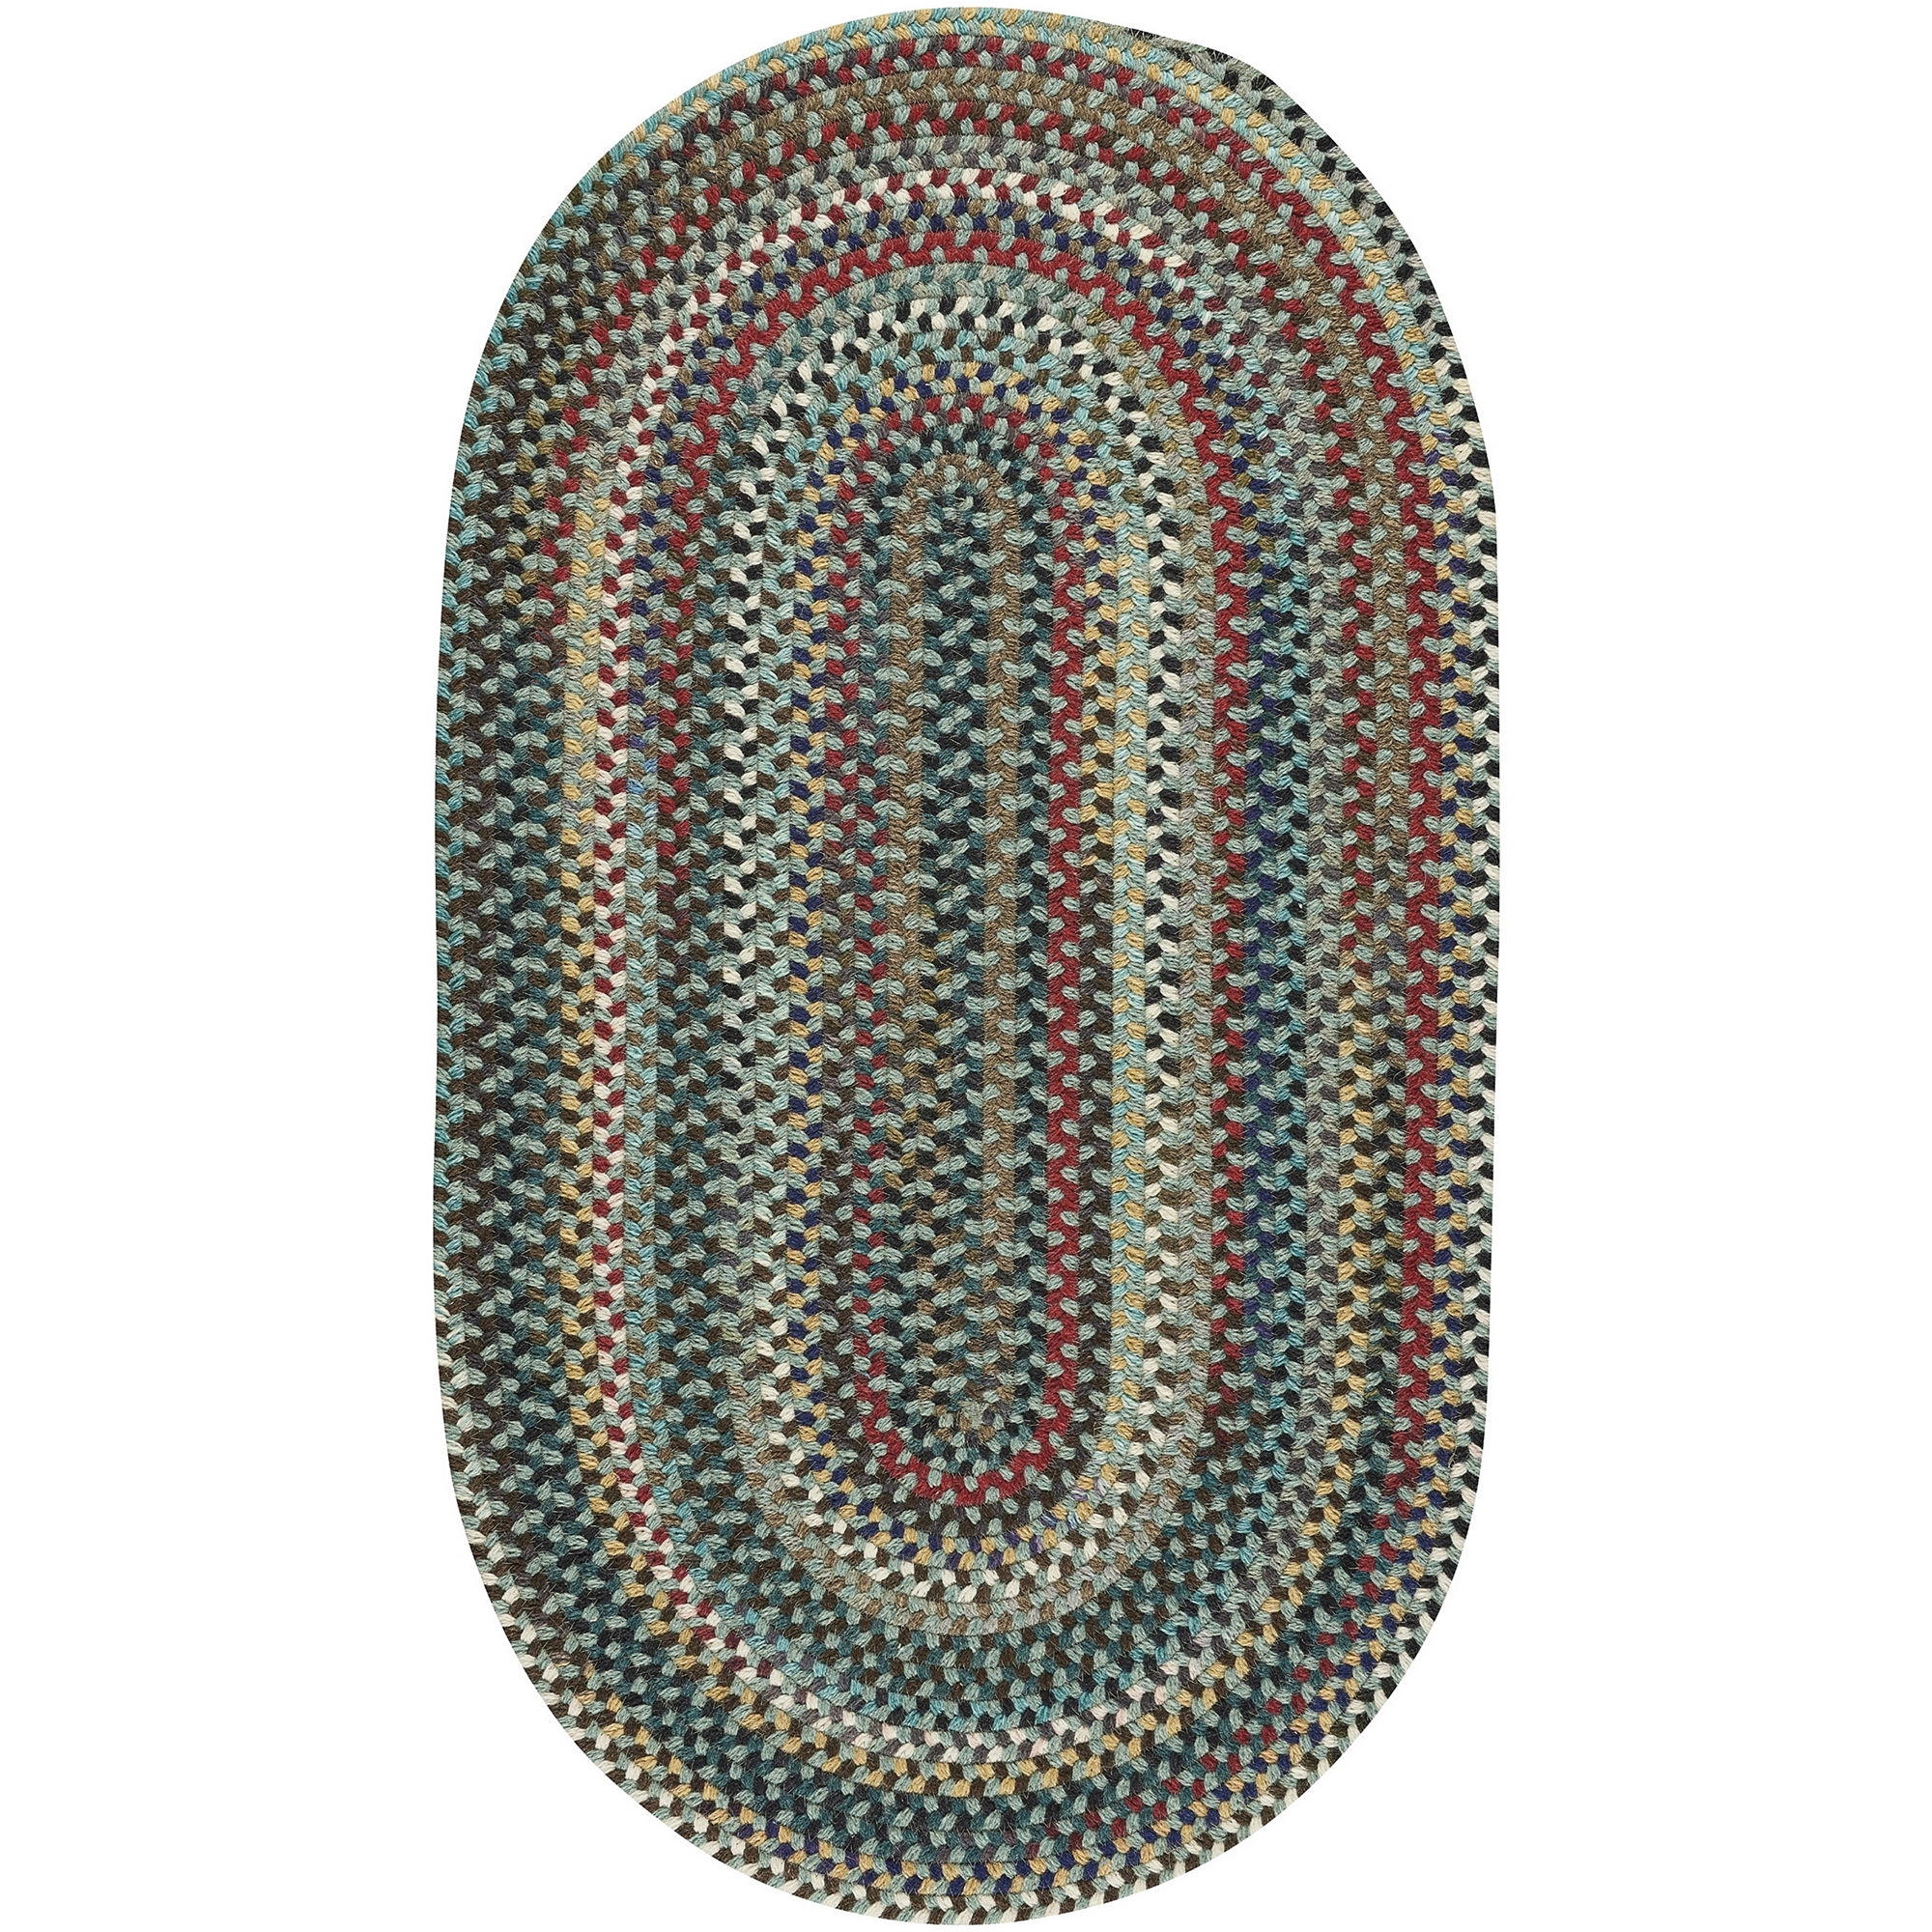 Capel Inc. Bunker Hill Braided Oval Rugs